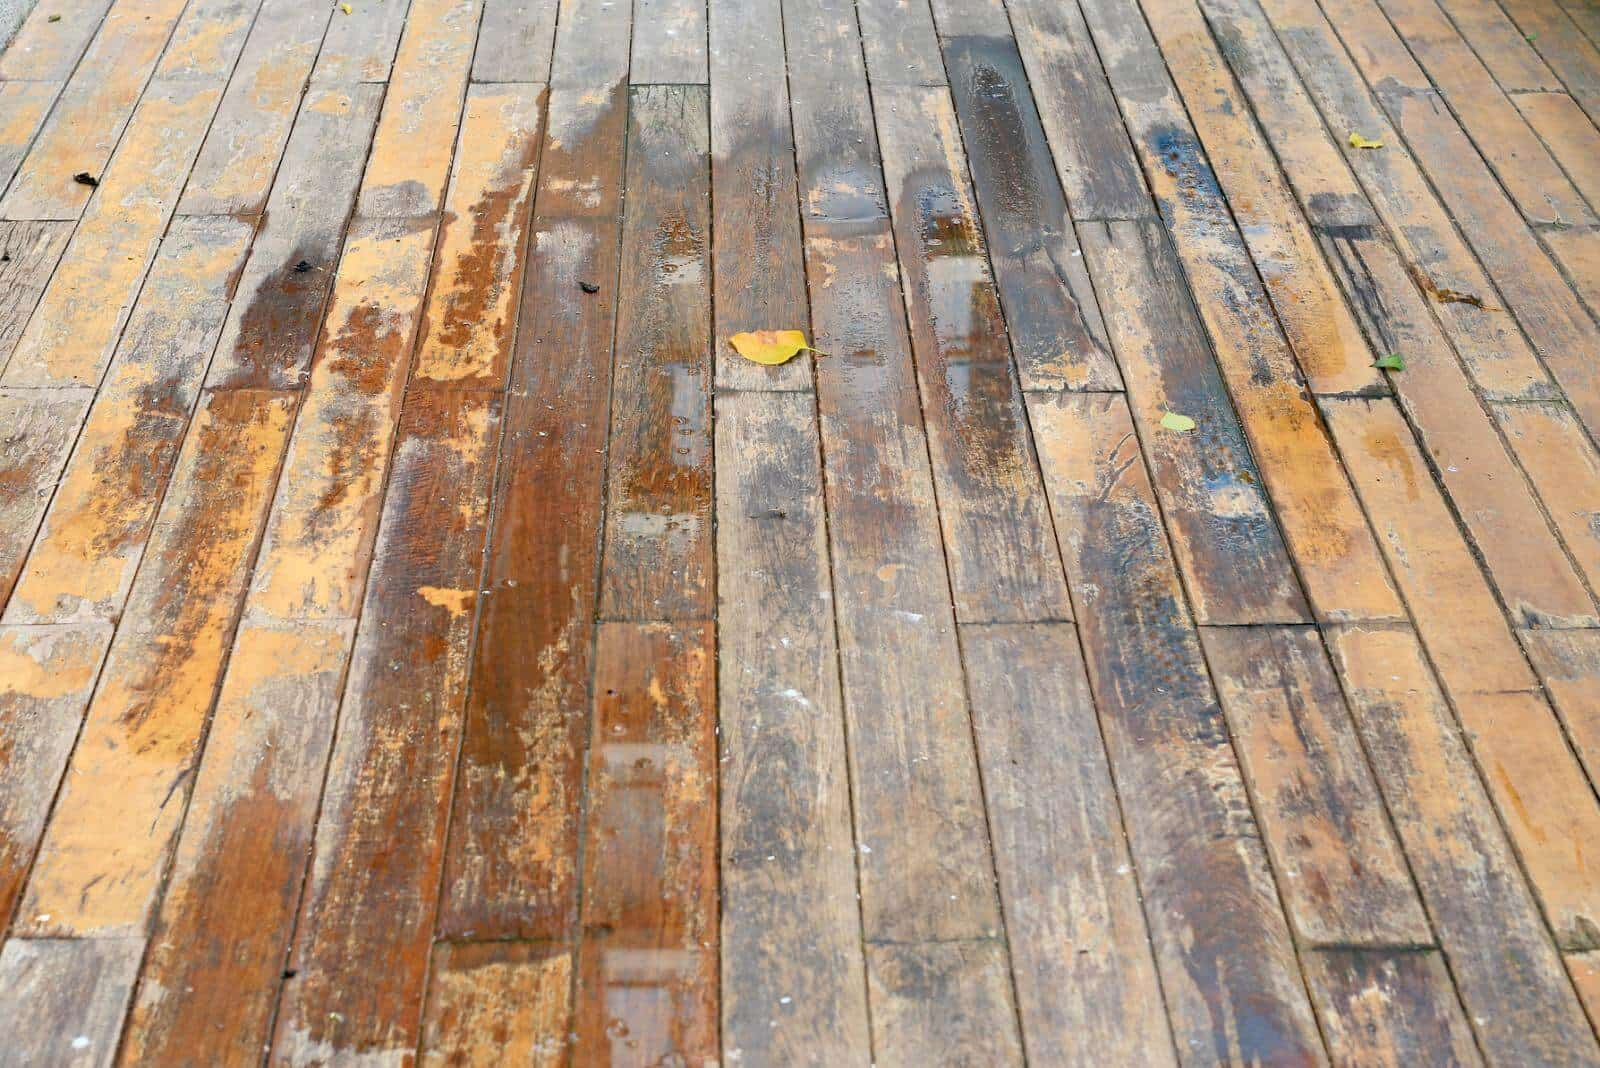 Deep Stains on wooden floor